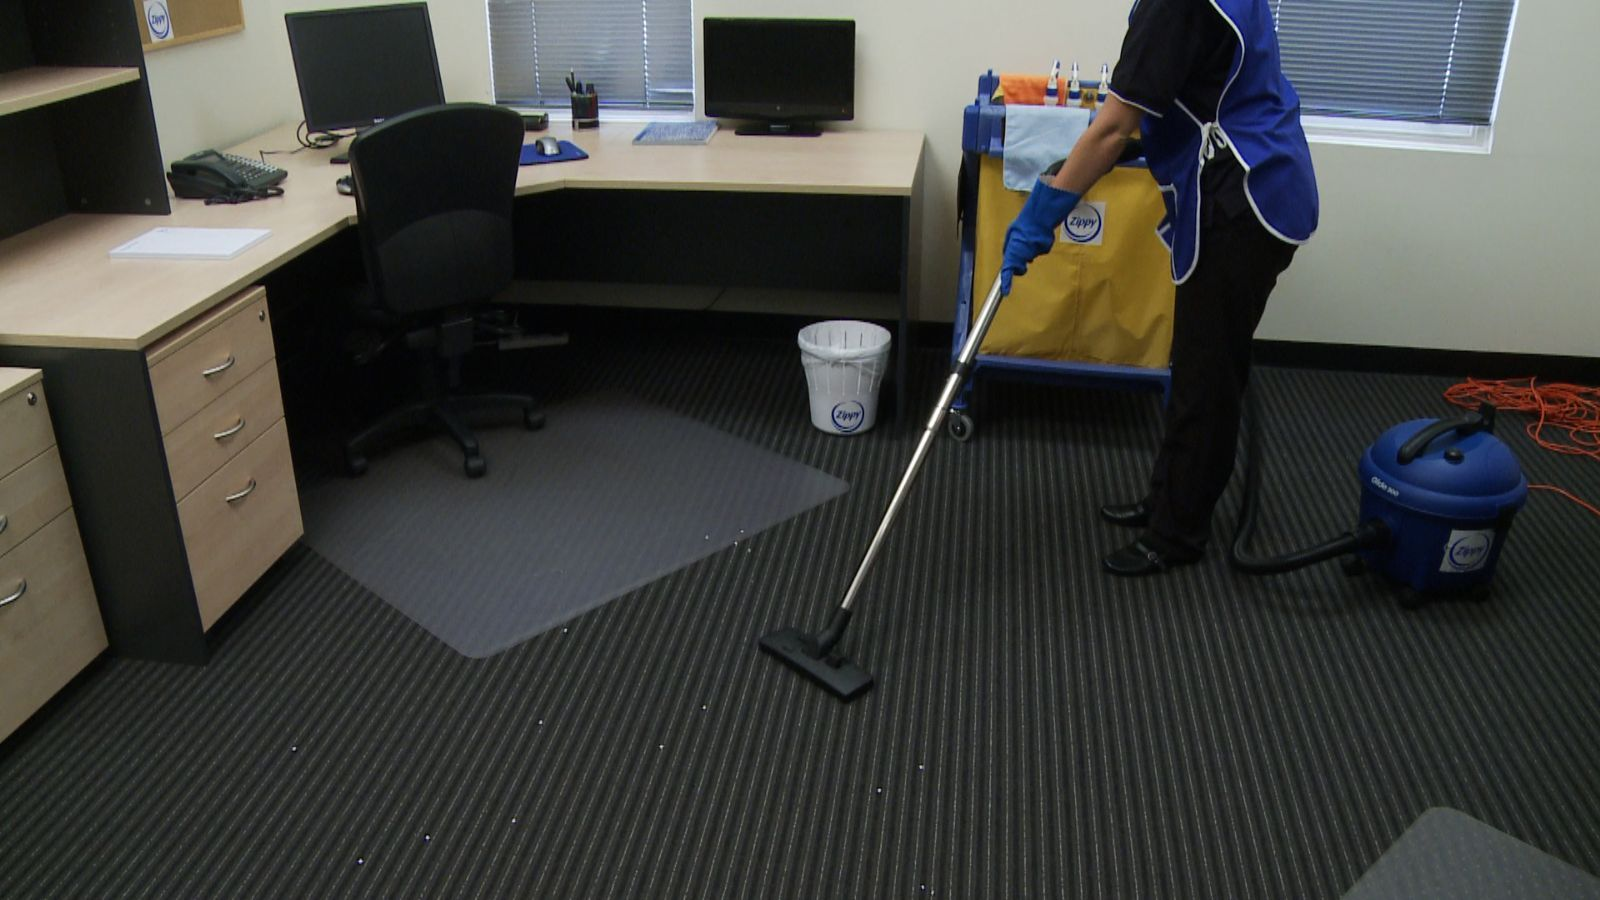 Professional Office Cleaning Company Cleaningservice Office